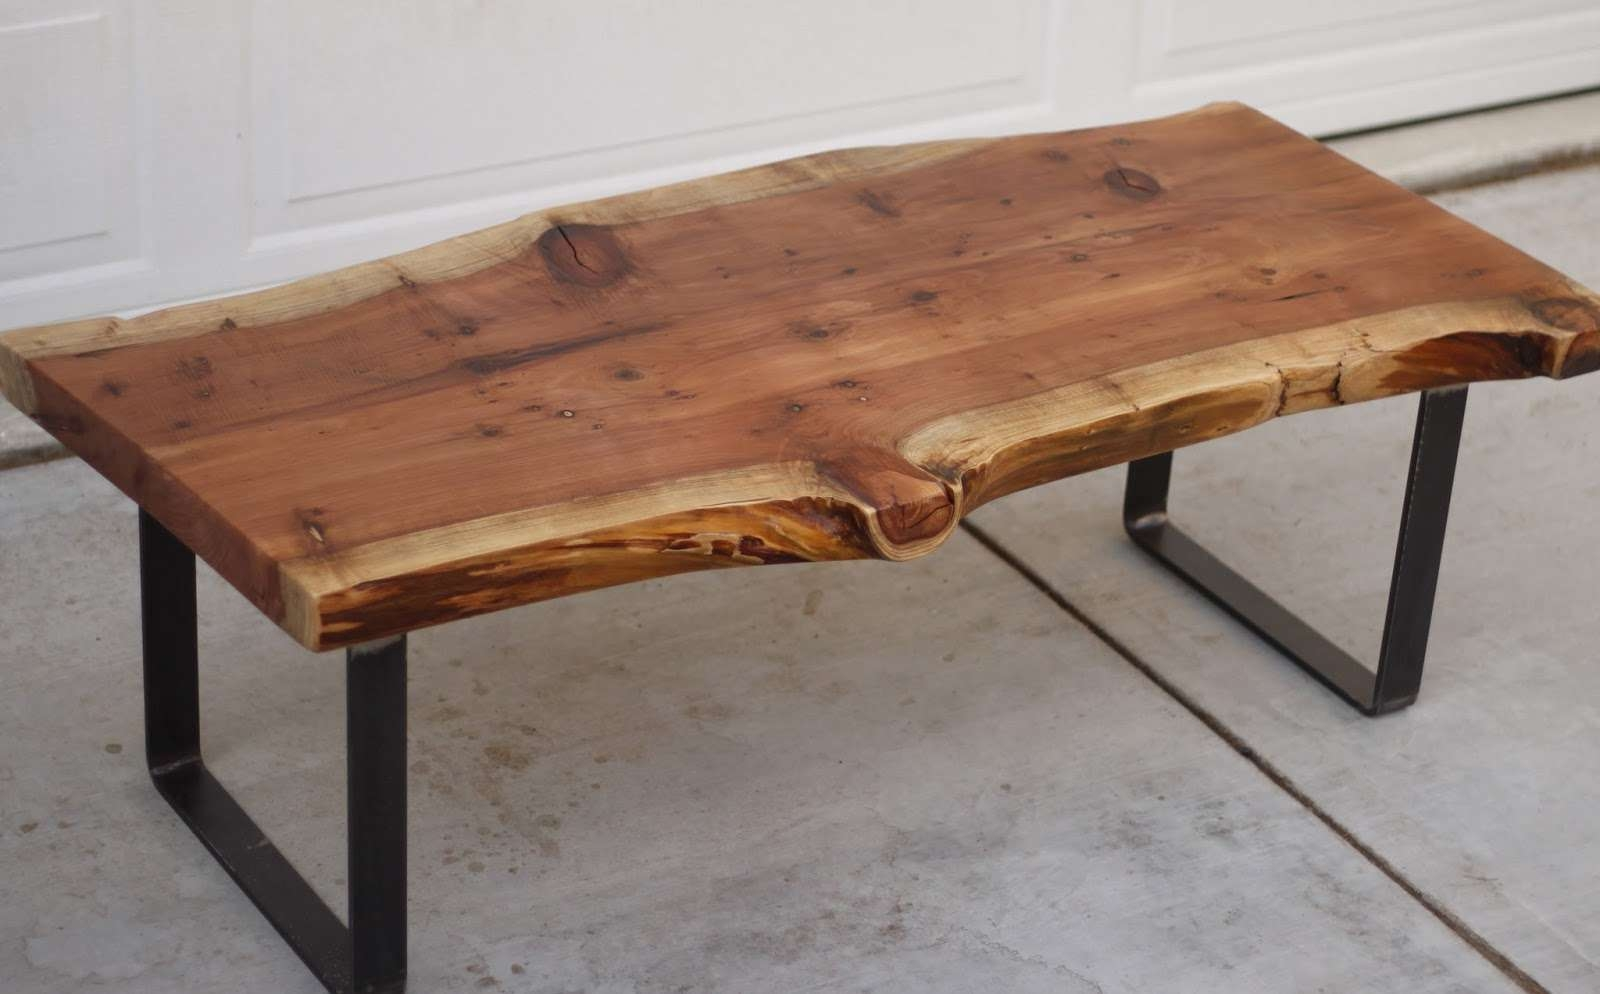 Current Rustic Wooden Coffee Tables Intended For Coffee Tables : Reclaimed Coffee Table Raw Wood Coffee Table (View 4 of 20)